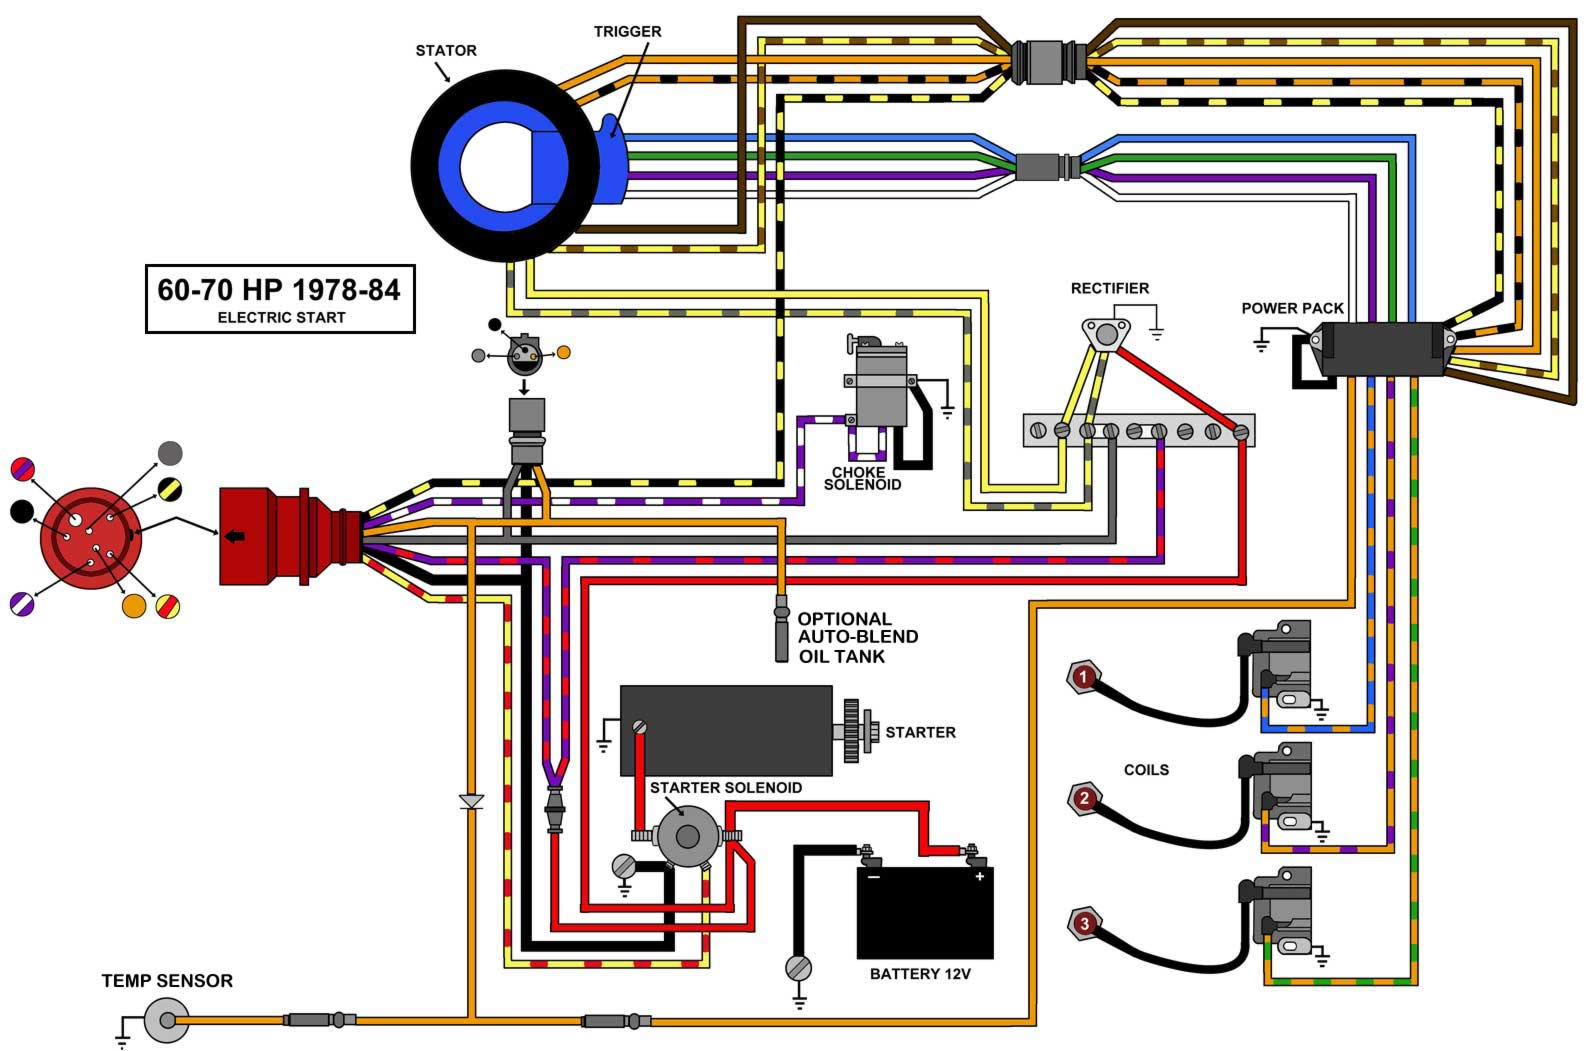 1989 omc wiring diagram 1989 wiring diagrams online wiring tach from johnson controls page 1 iboats boating forums